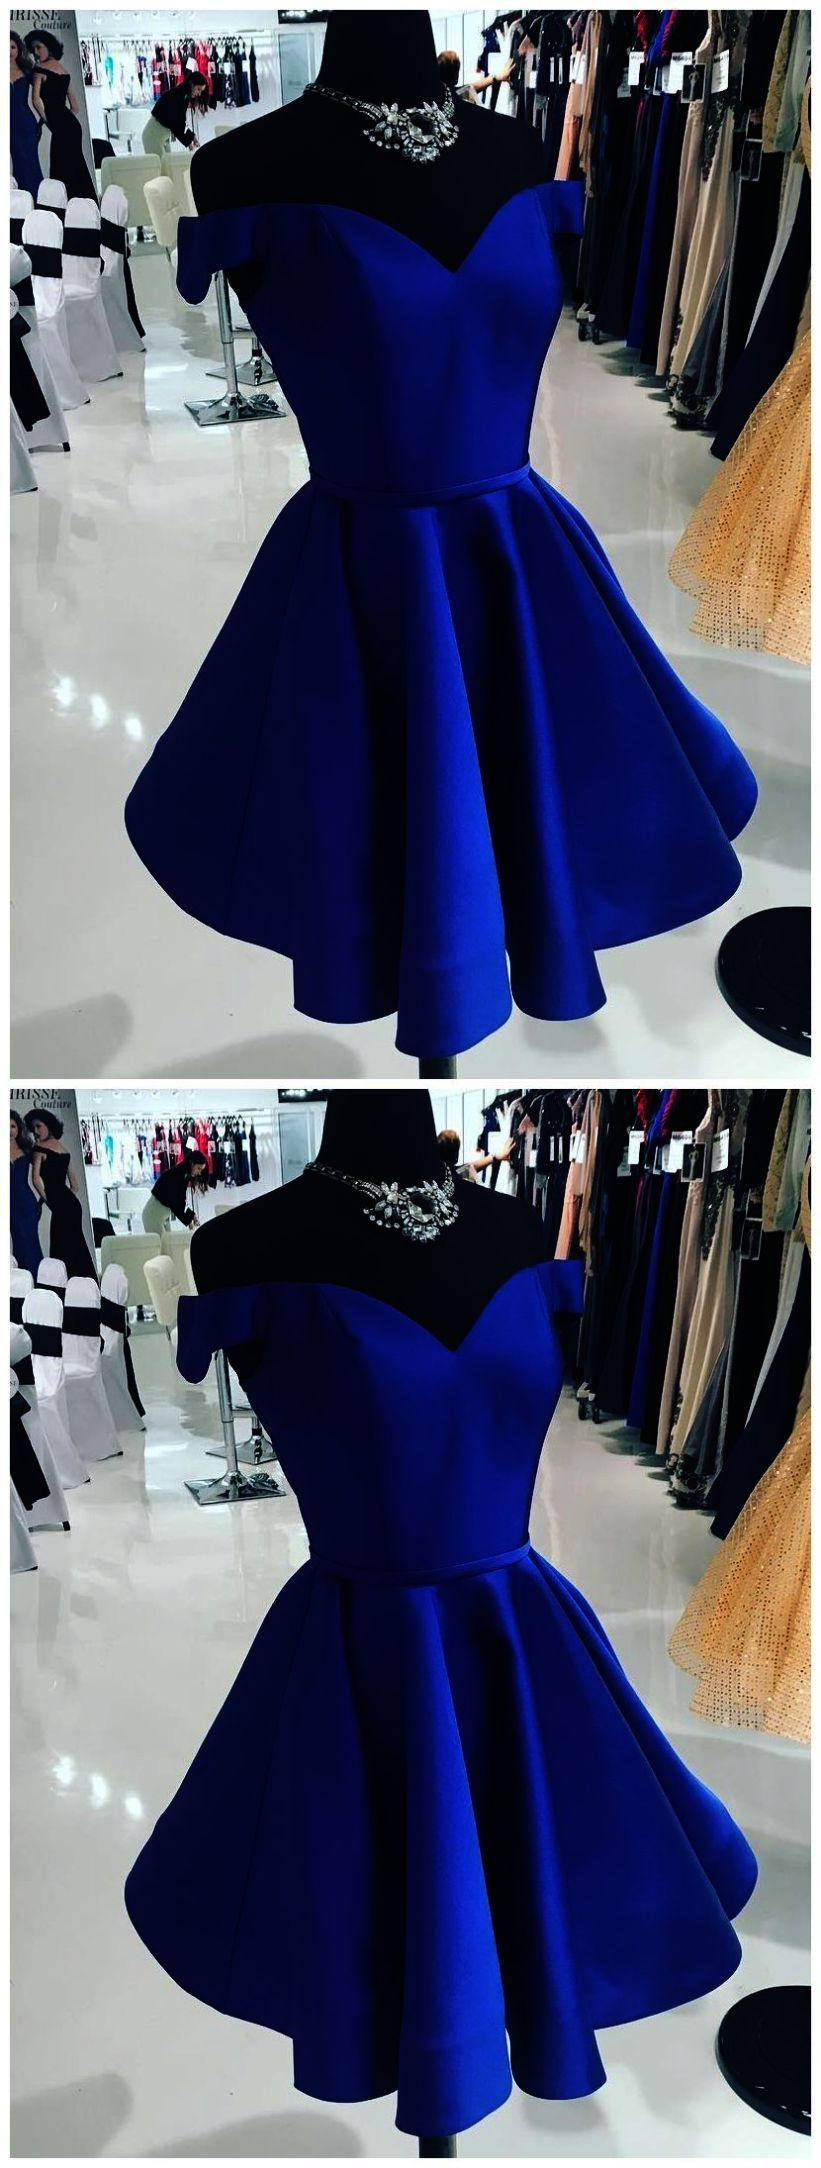 check out what i discoveredcute purple prom dresses tumblr